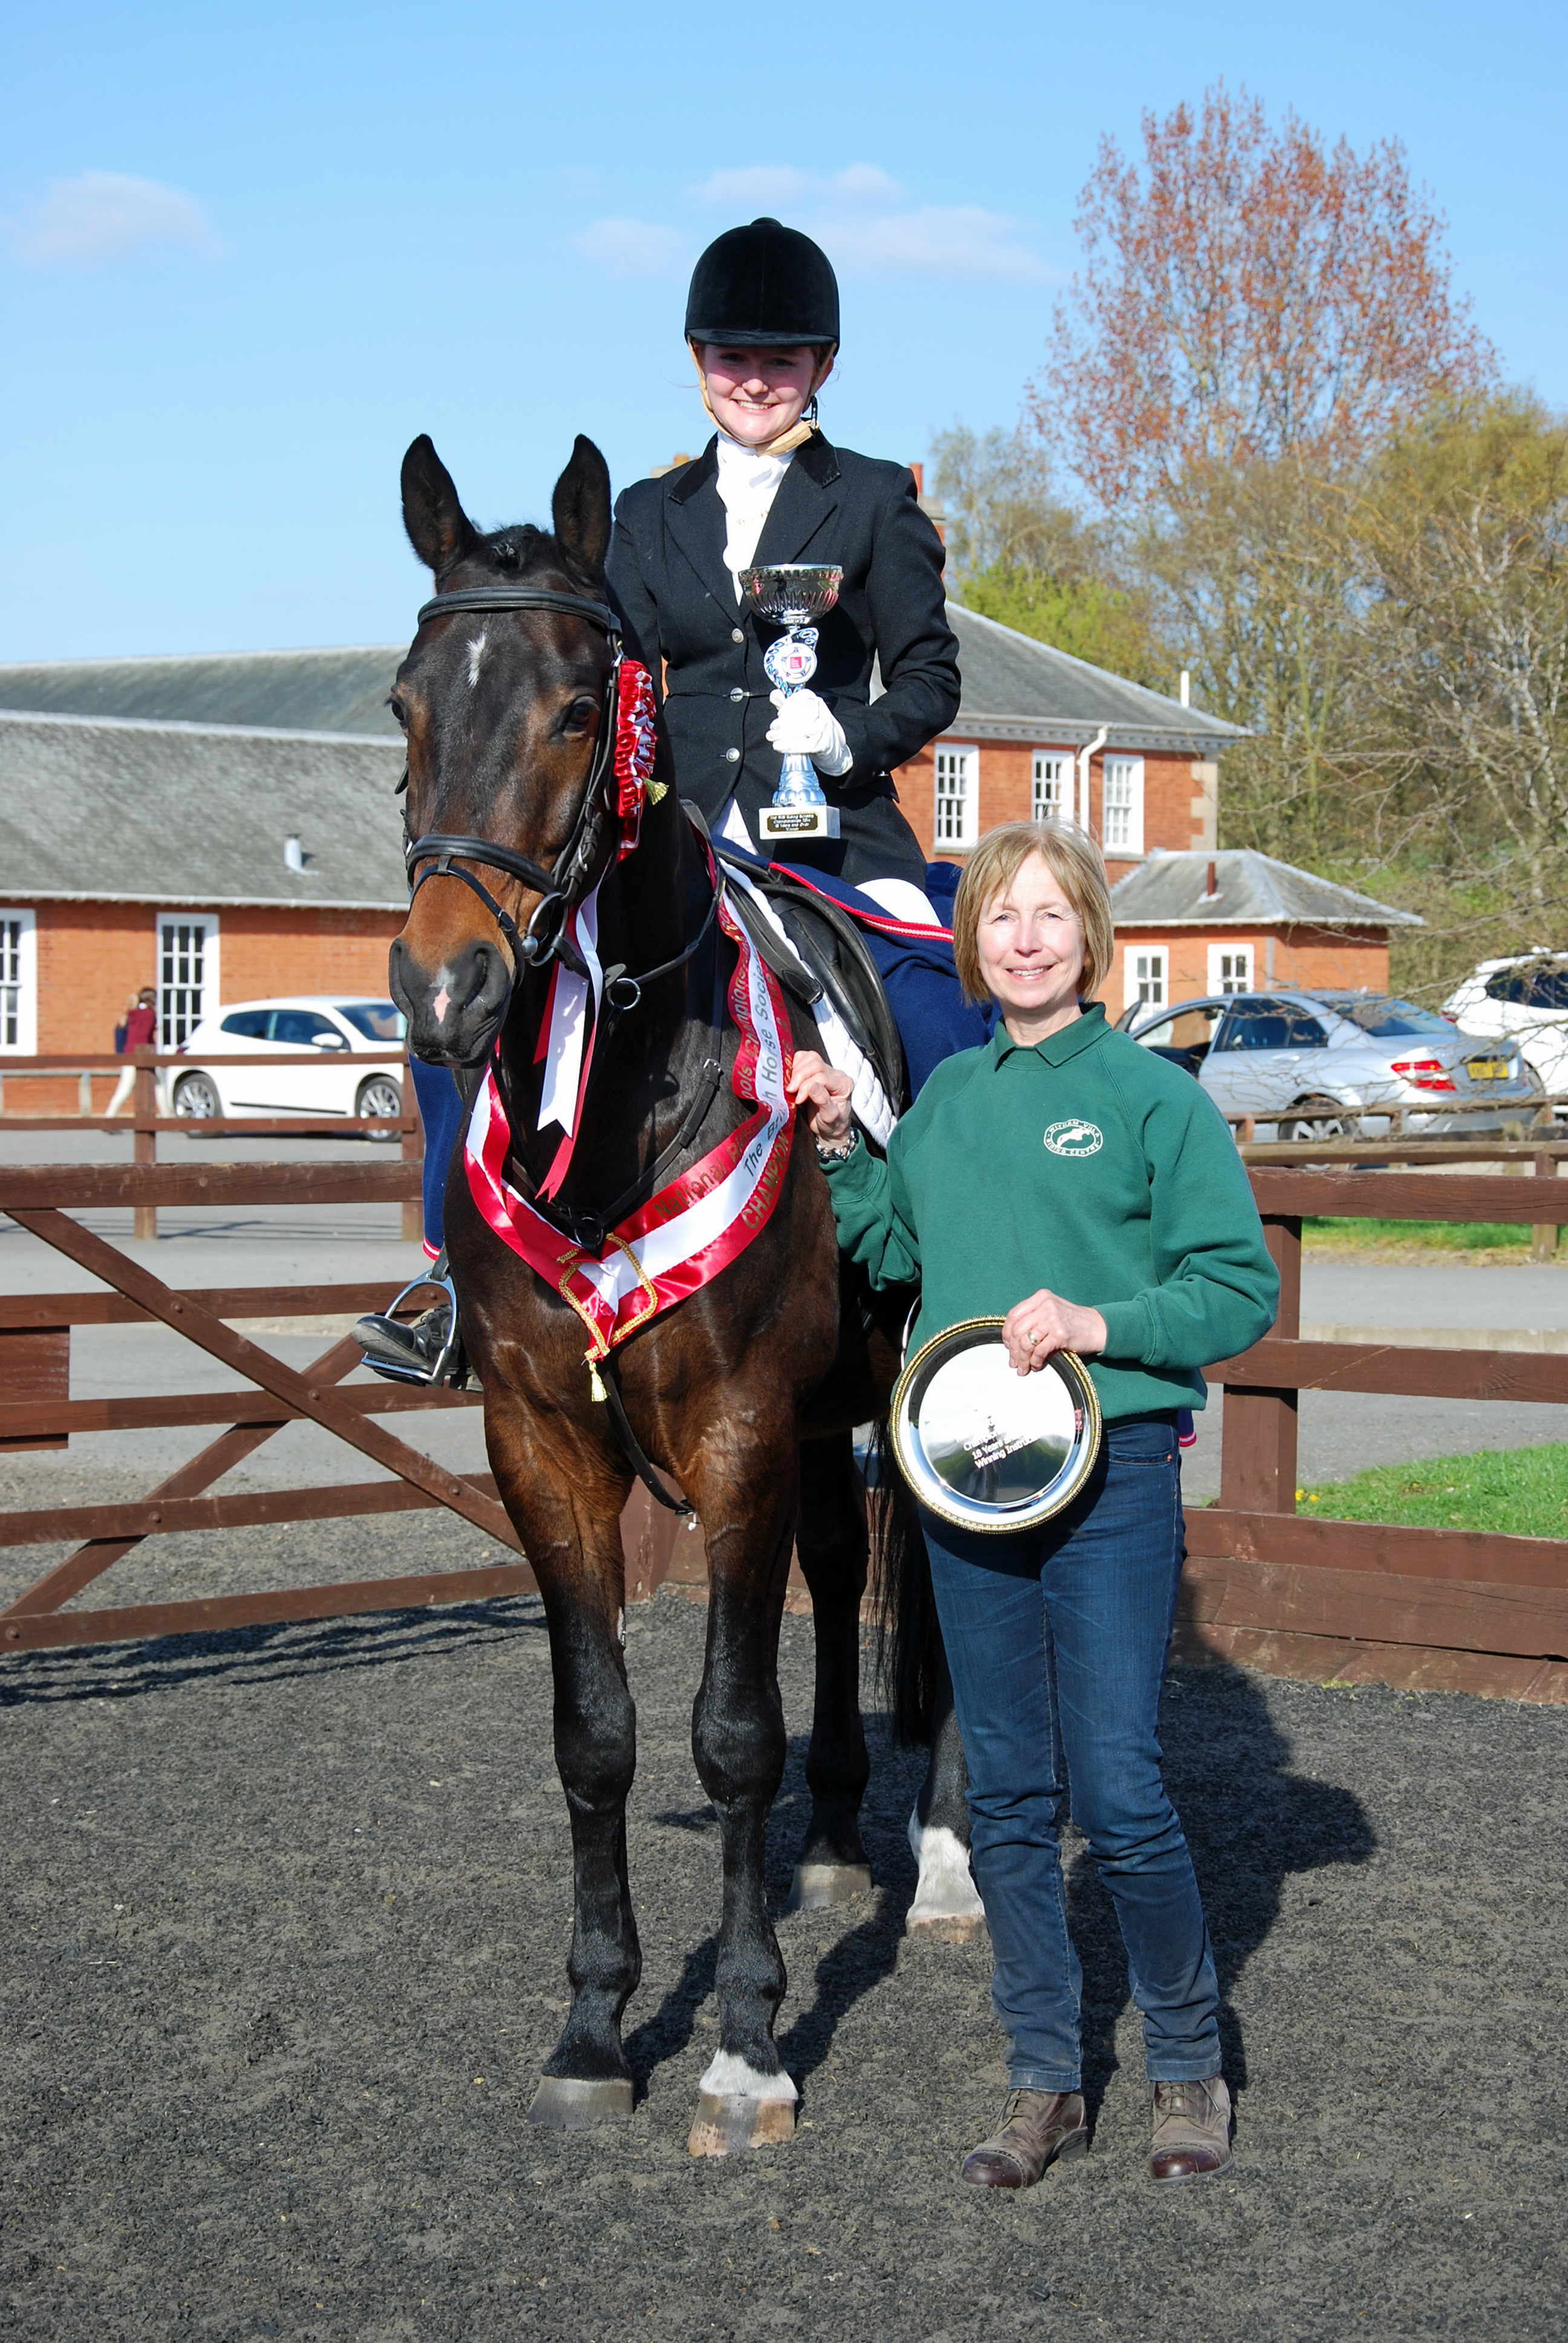 Over 18 winner - Riders from Leicestershire & N. Yorkshire win at National Riding Schools Championships